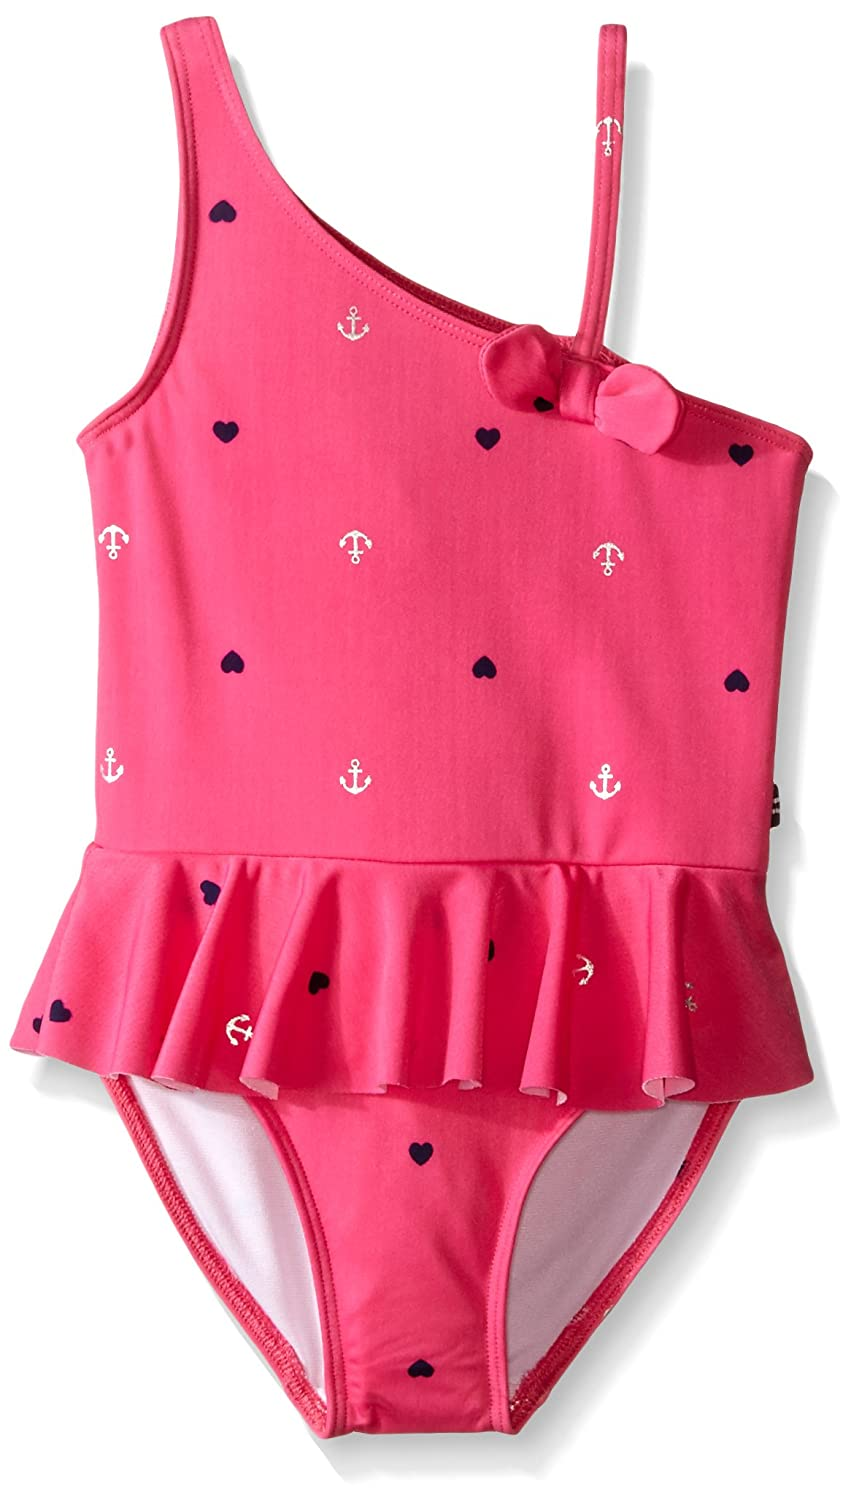 Nautica Little Girls' Anchor Foil Print One-piece Fuchsia 2T 36NCO0081Q